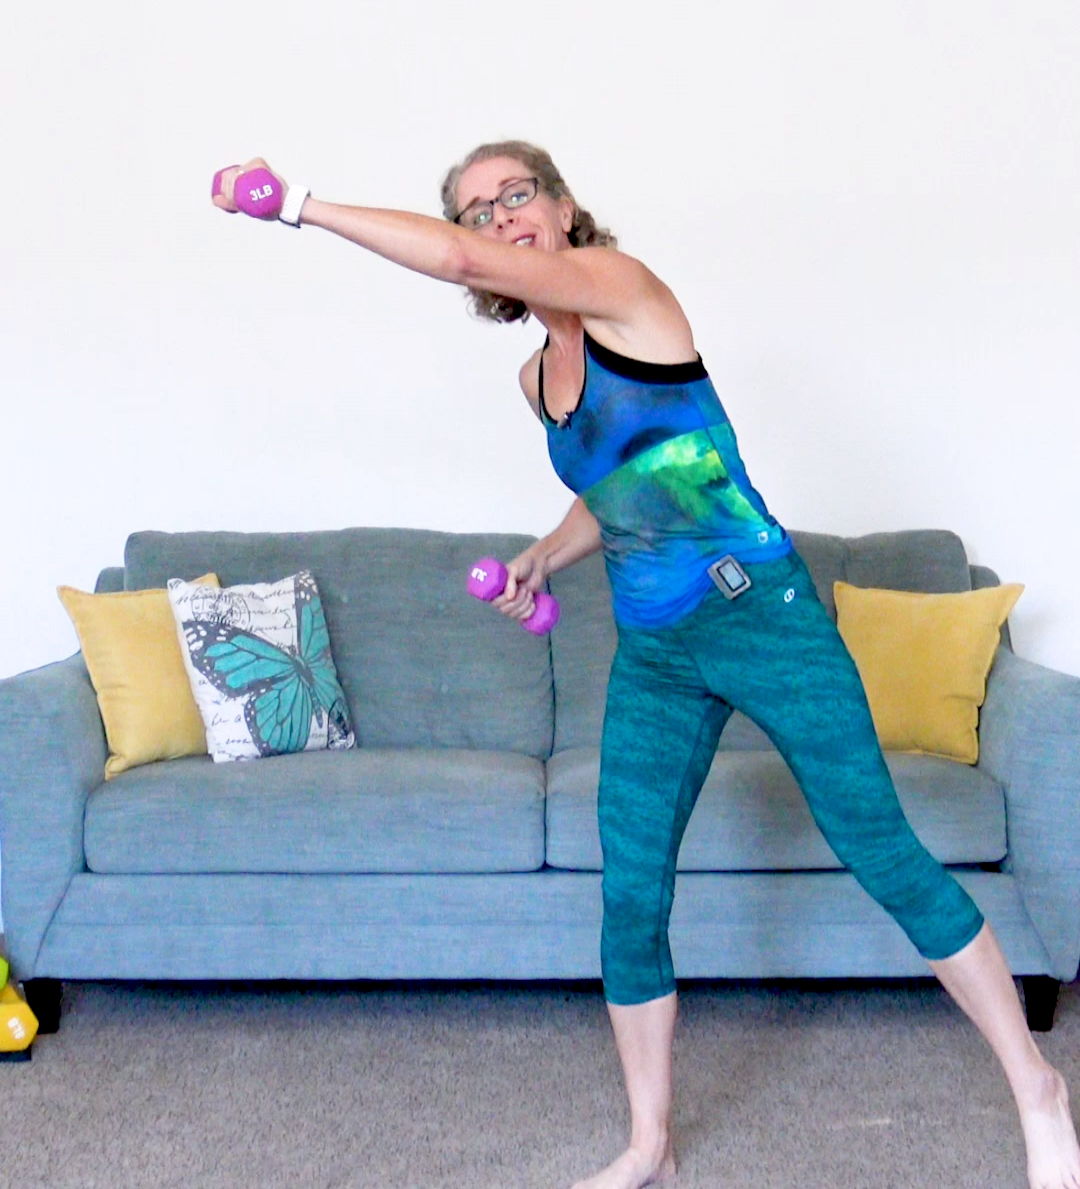 20 Minute LOW IMPACT Weight Loss Cardio Toning Workout for Women over 50 Looking to lose weight during perimenopause menopause or beyond This 20 minute LOW IMPACT cardio...